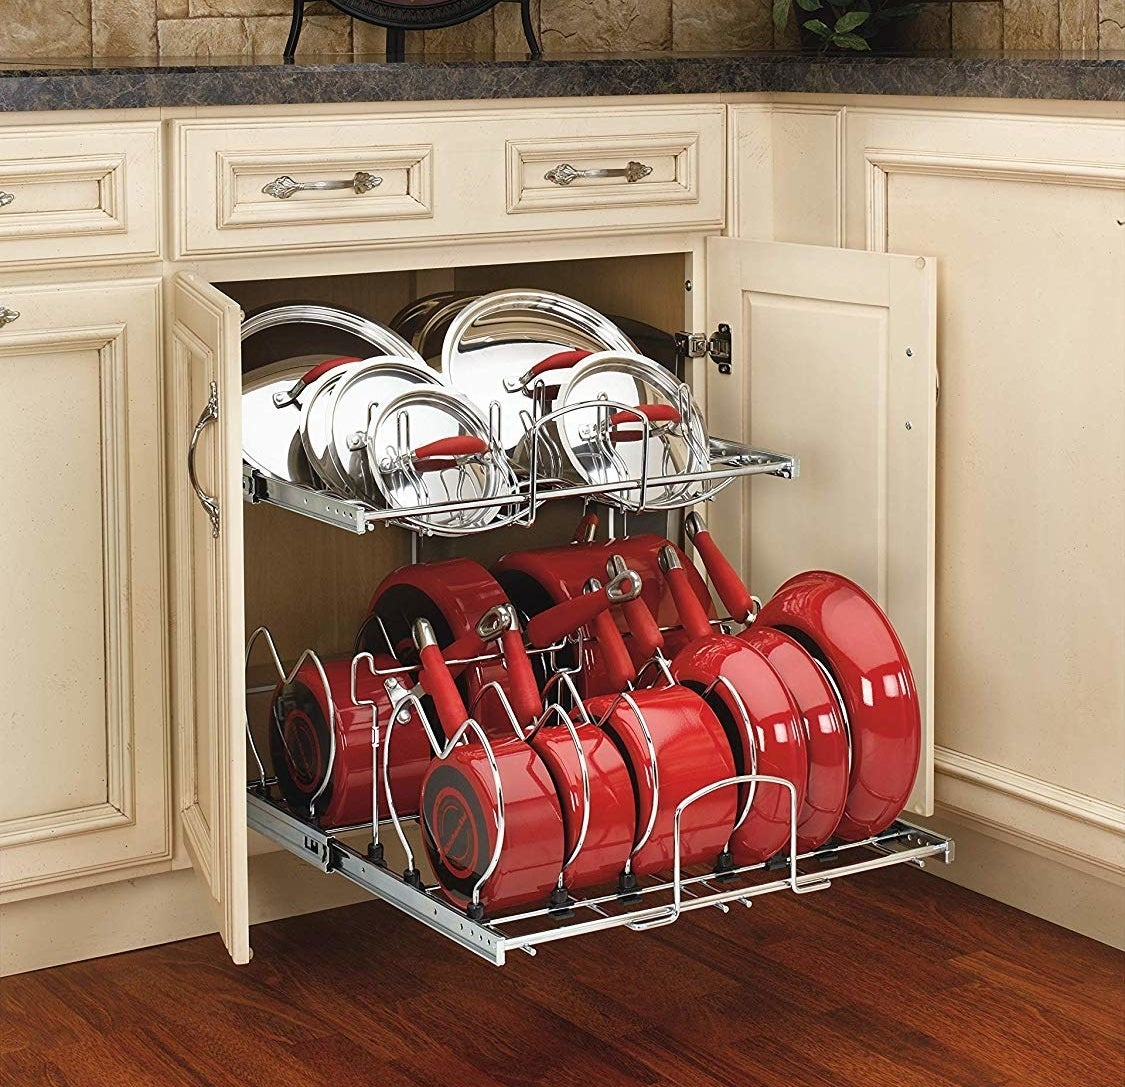 The metal organizer with nine pots/pans on the bottom and lids on top